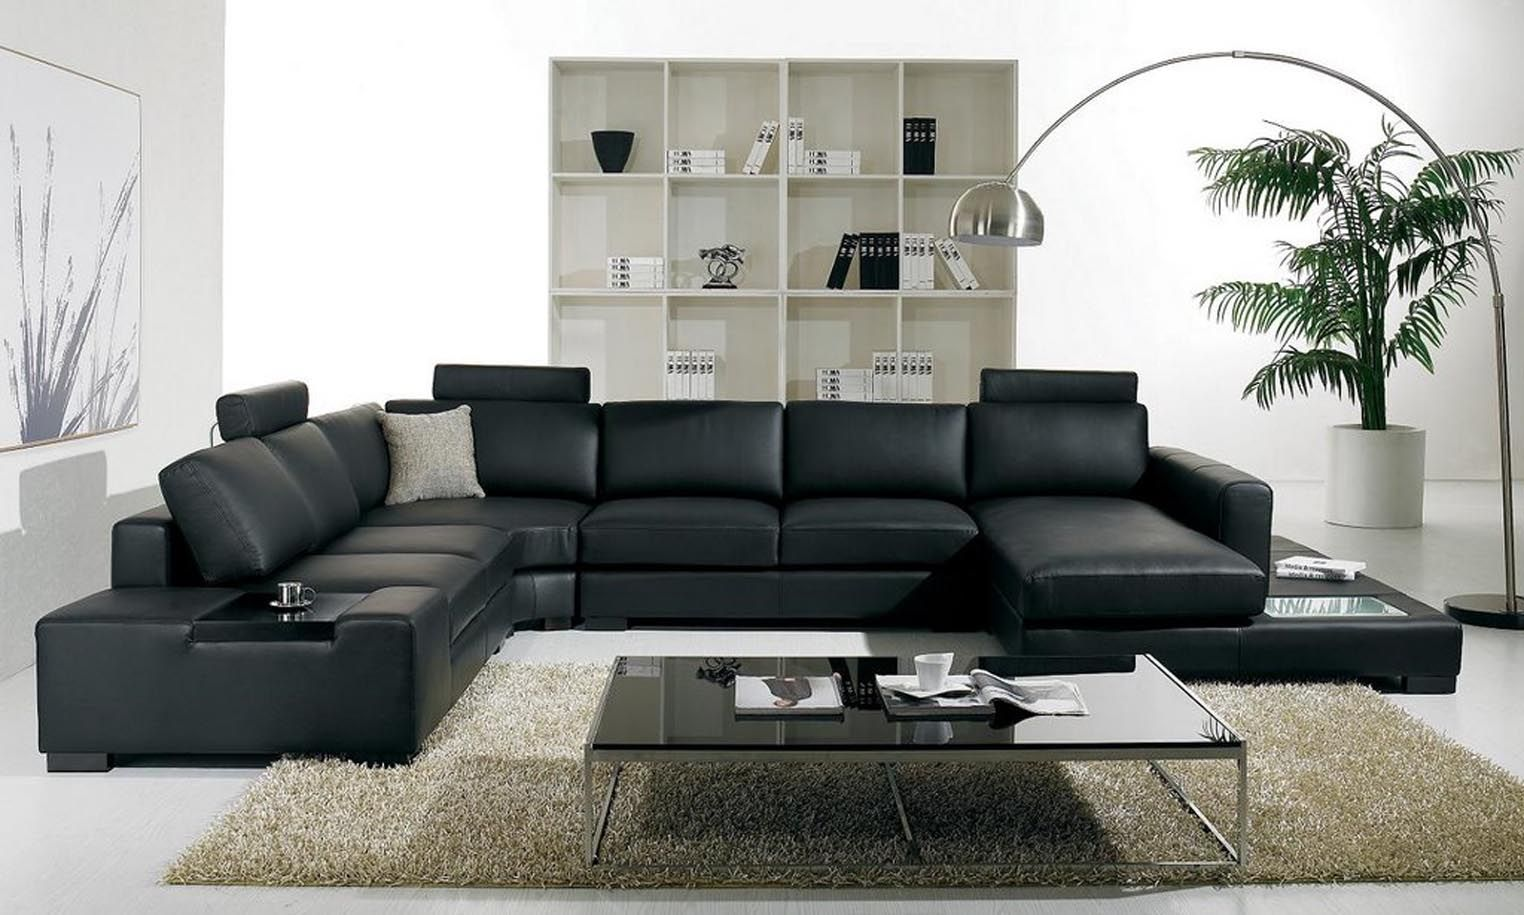 Comfy Leather Couches comfortable black leather sectional sofa - the versatility and